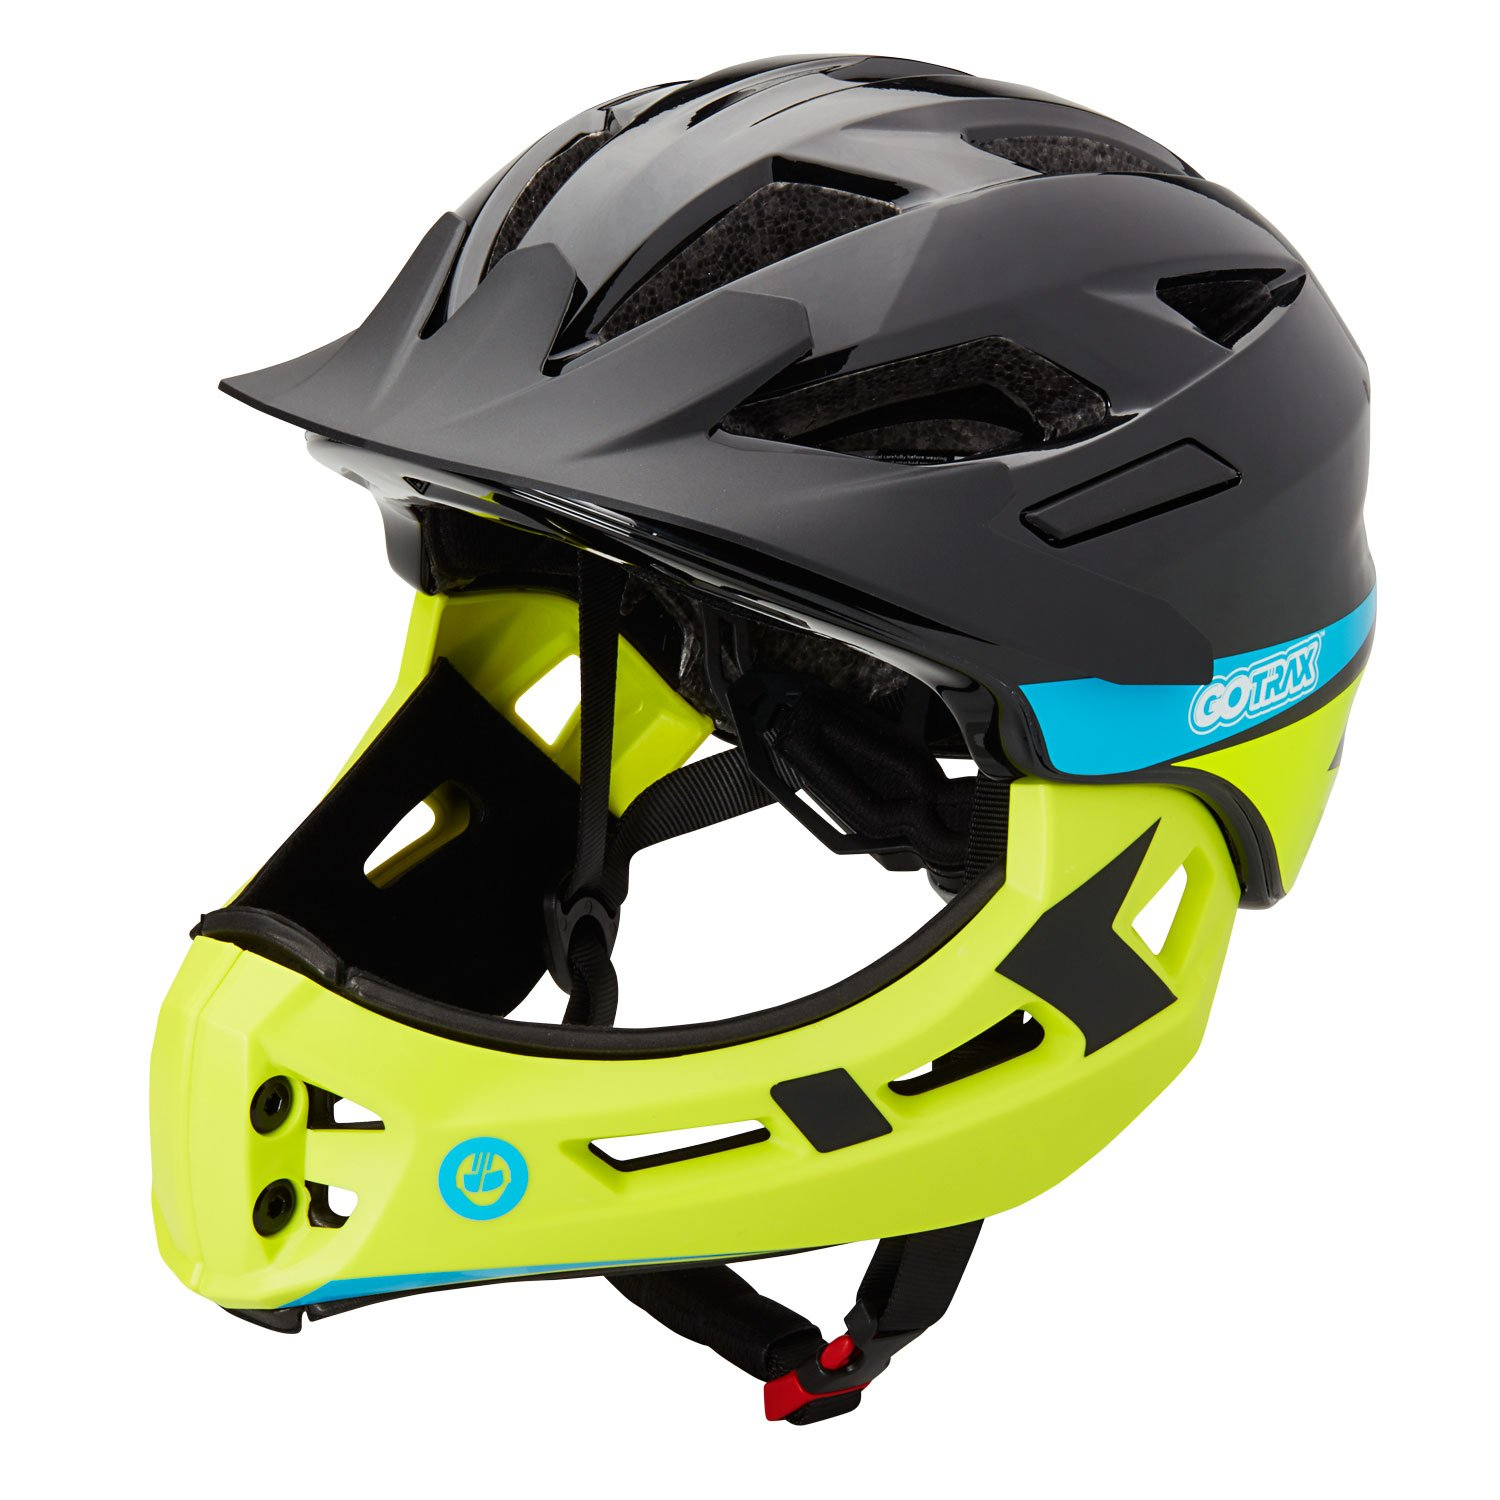 GOTRAX 2-IN1 FULL FACED HELMET